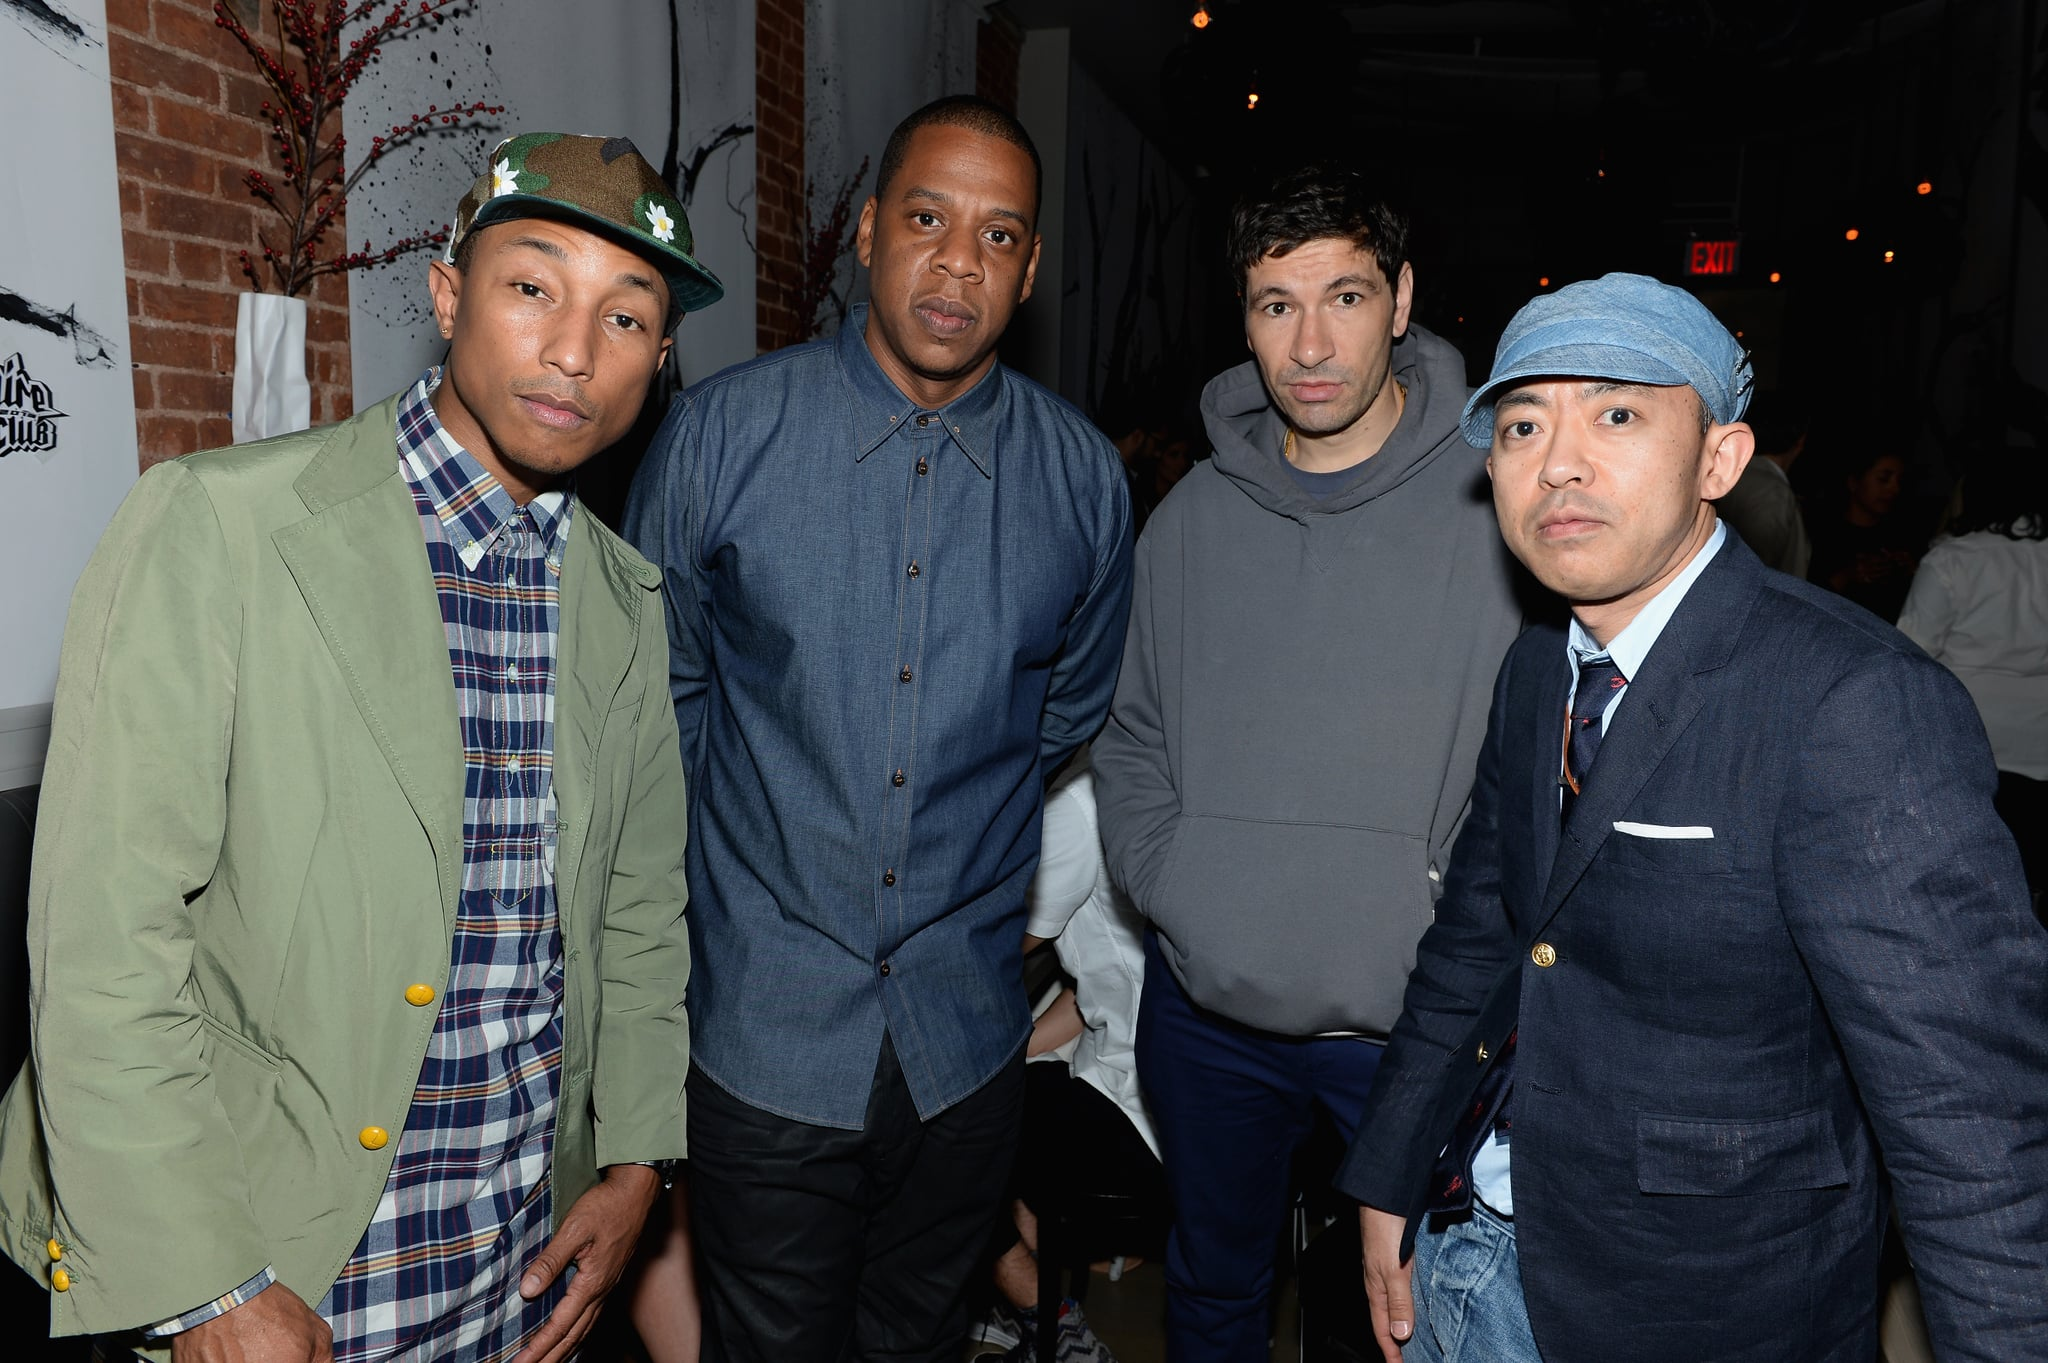 Pharrell Williams and his Billionaire Boys Club cofounder, Nigo, posed with Jay-Z and another guest.